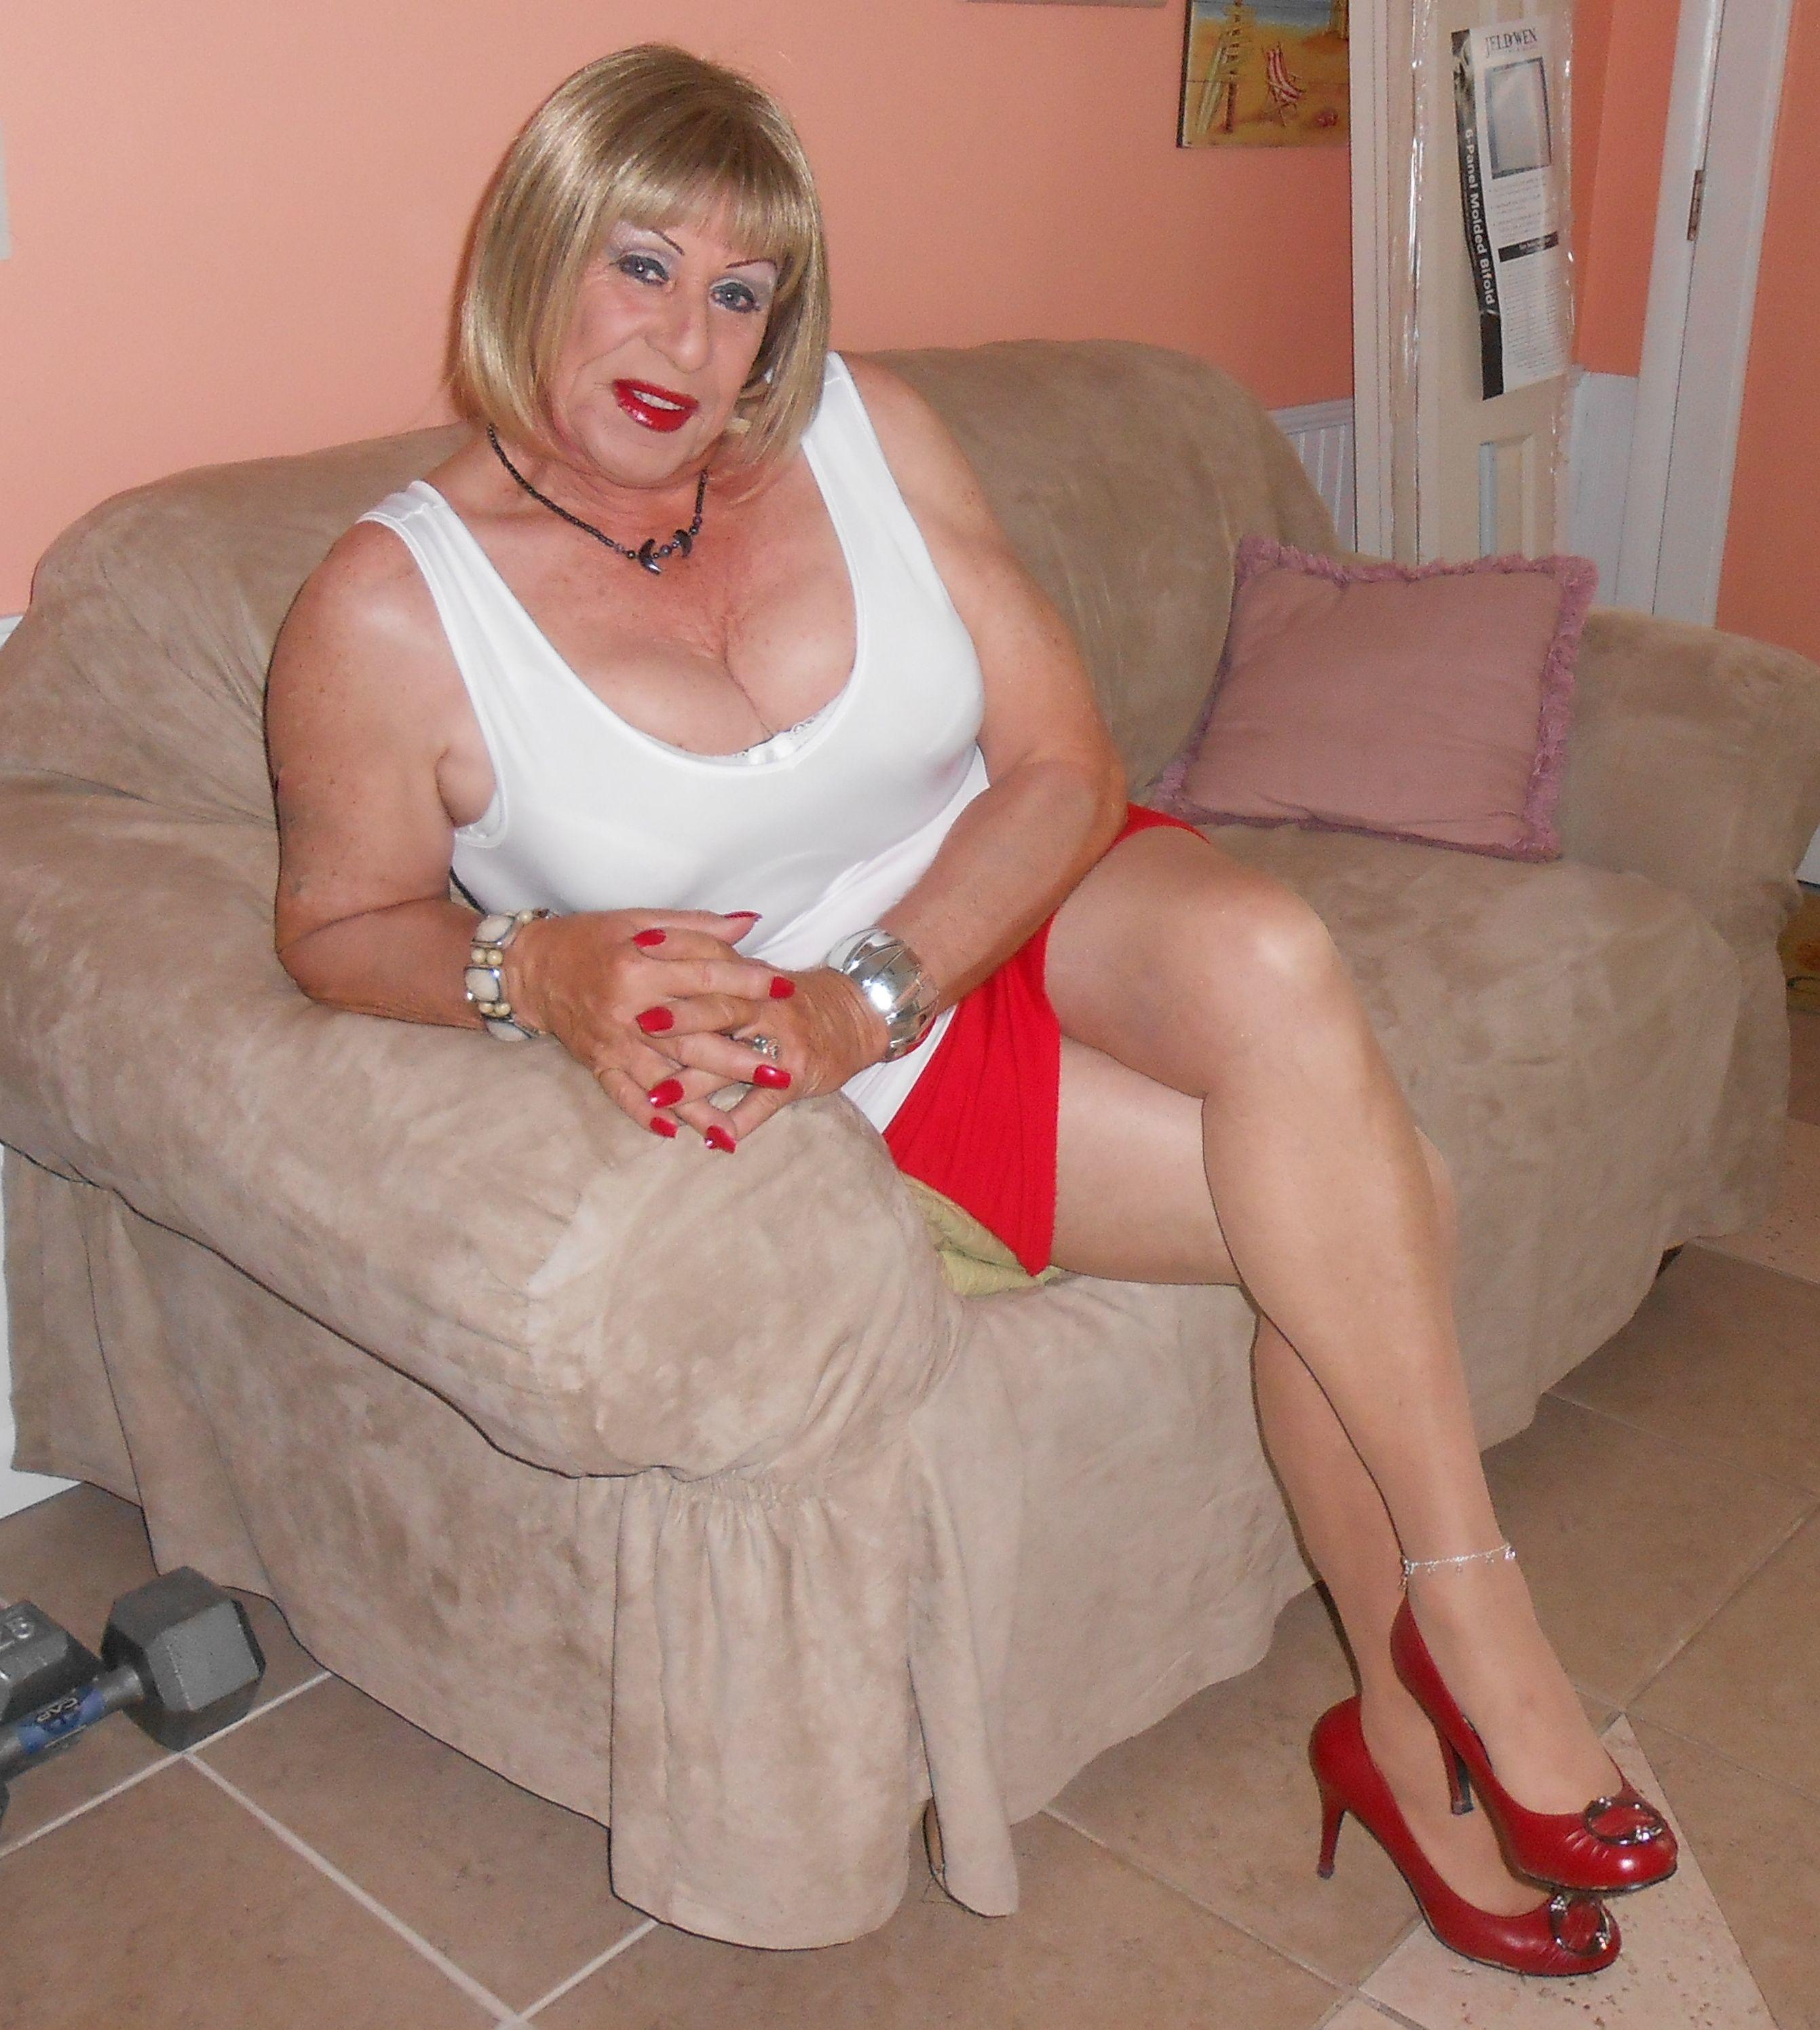 Watch Mature Crossdresser Sex Porn In Hd Fotos Daily -4550